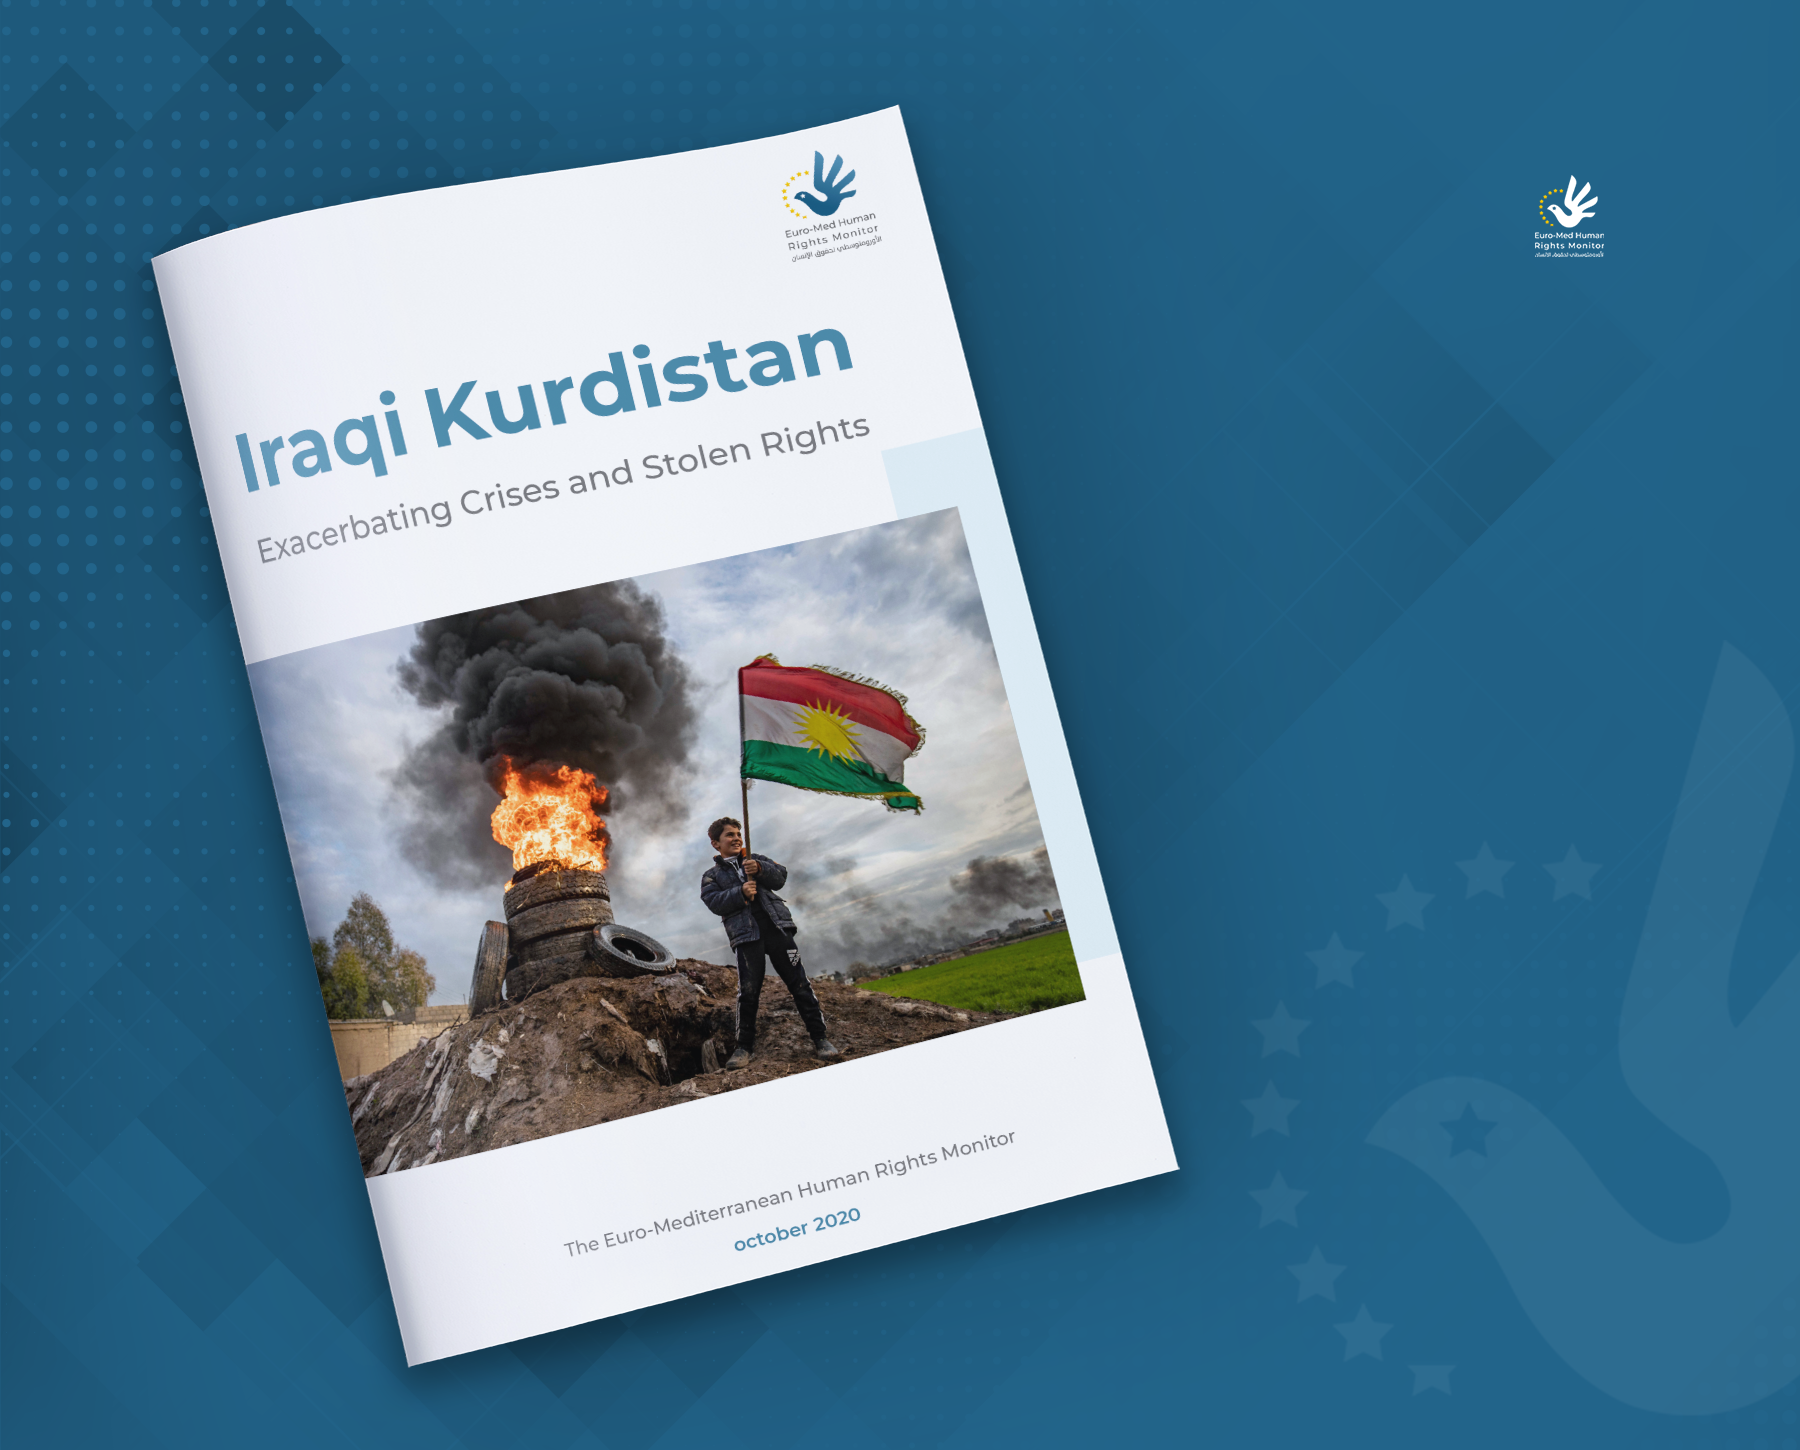 Iraqi Kurdistan: Exacerbating Crises and Stolen Rights